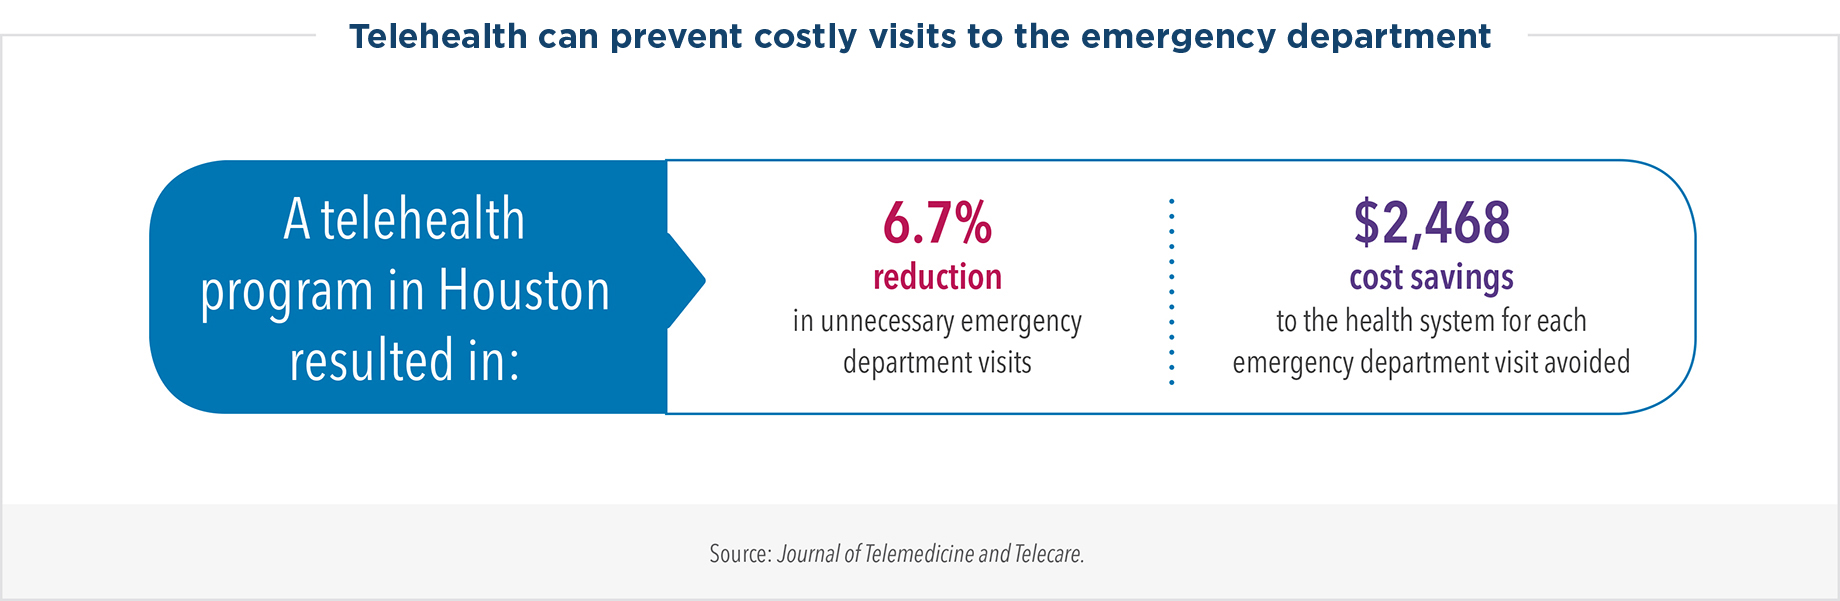 Telehealth can prevent costly visits to the emergency department. A telehealth program in Houston resulted in a 6.7% reduction in unnecessary emergency department visits and a cost savings of $2,468 to the health system for each emergency department visit avoided.